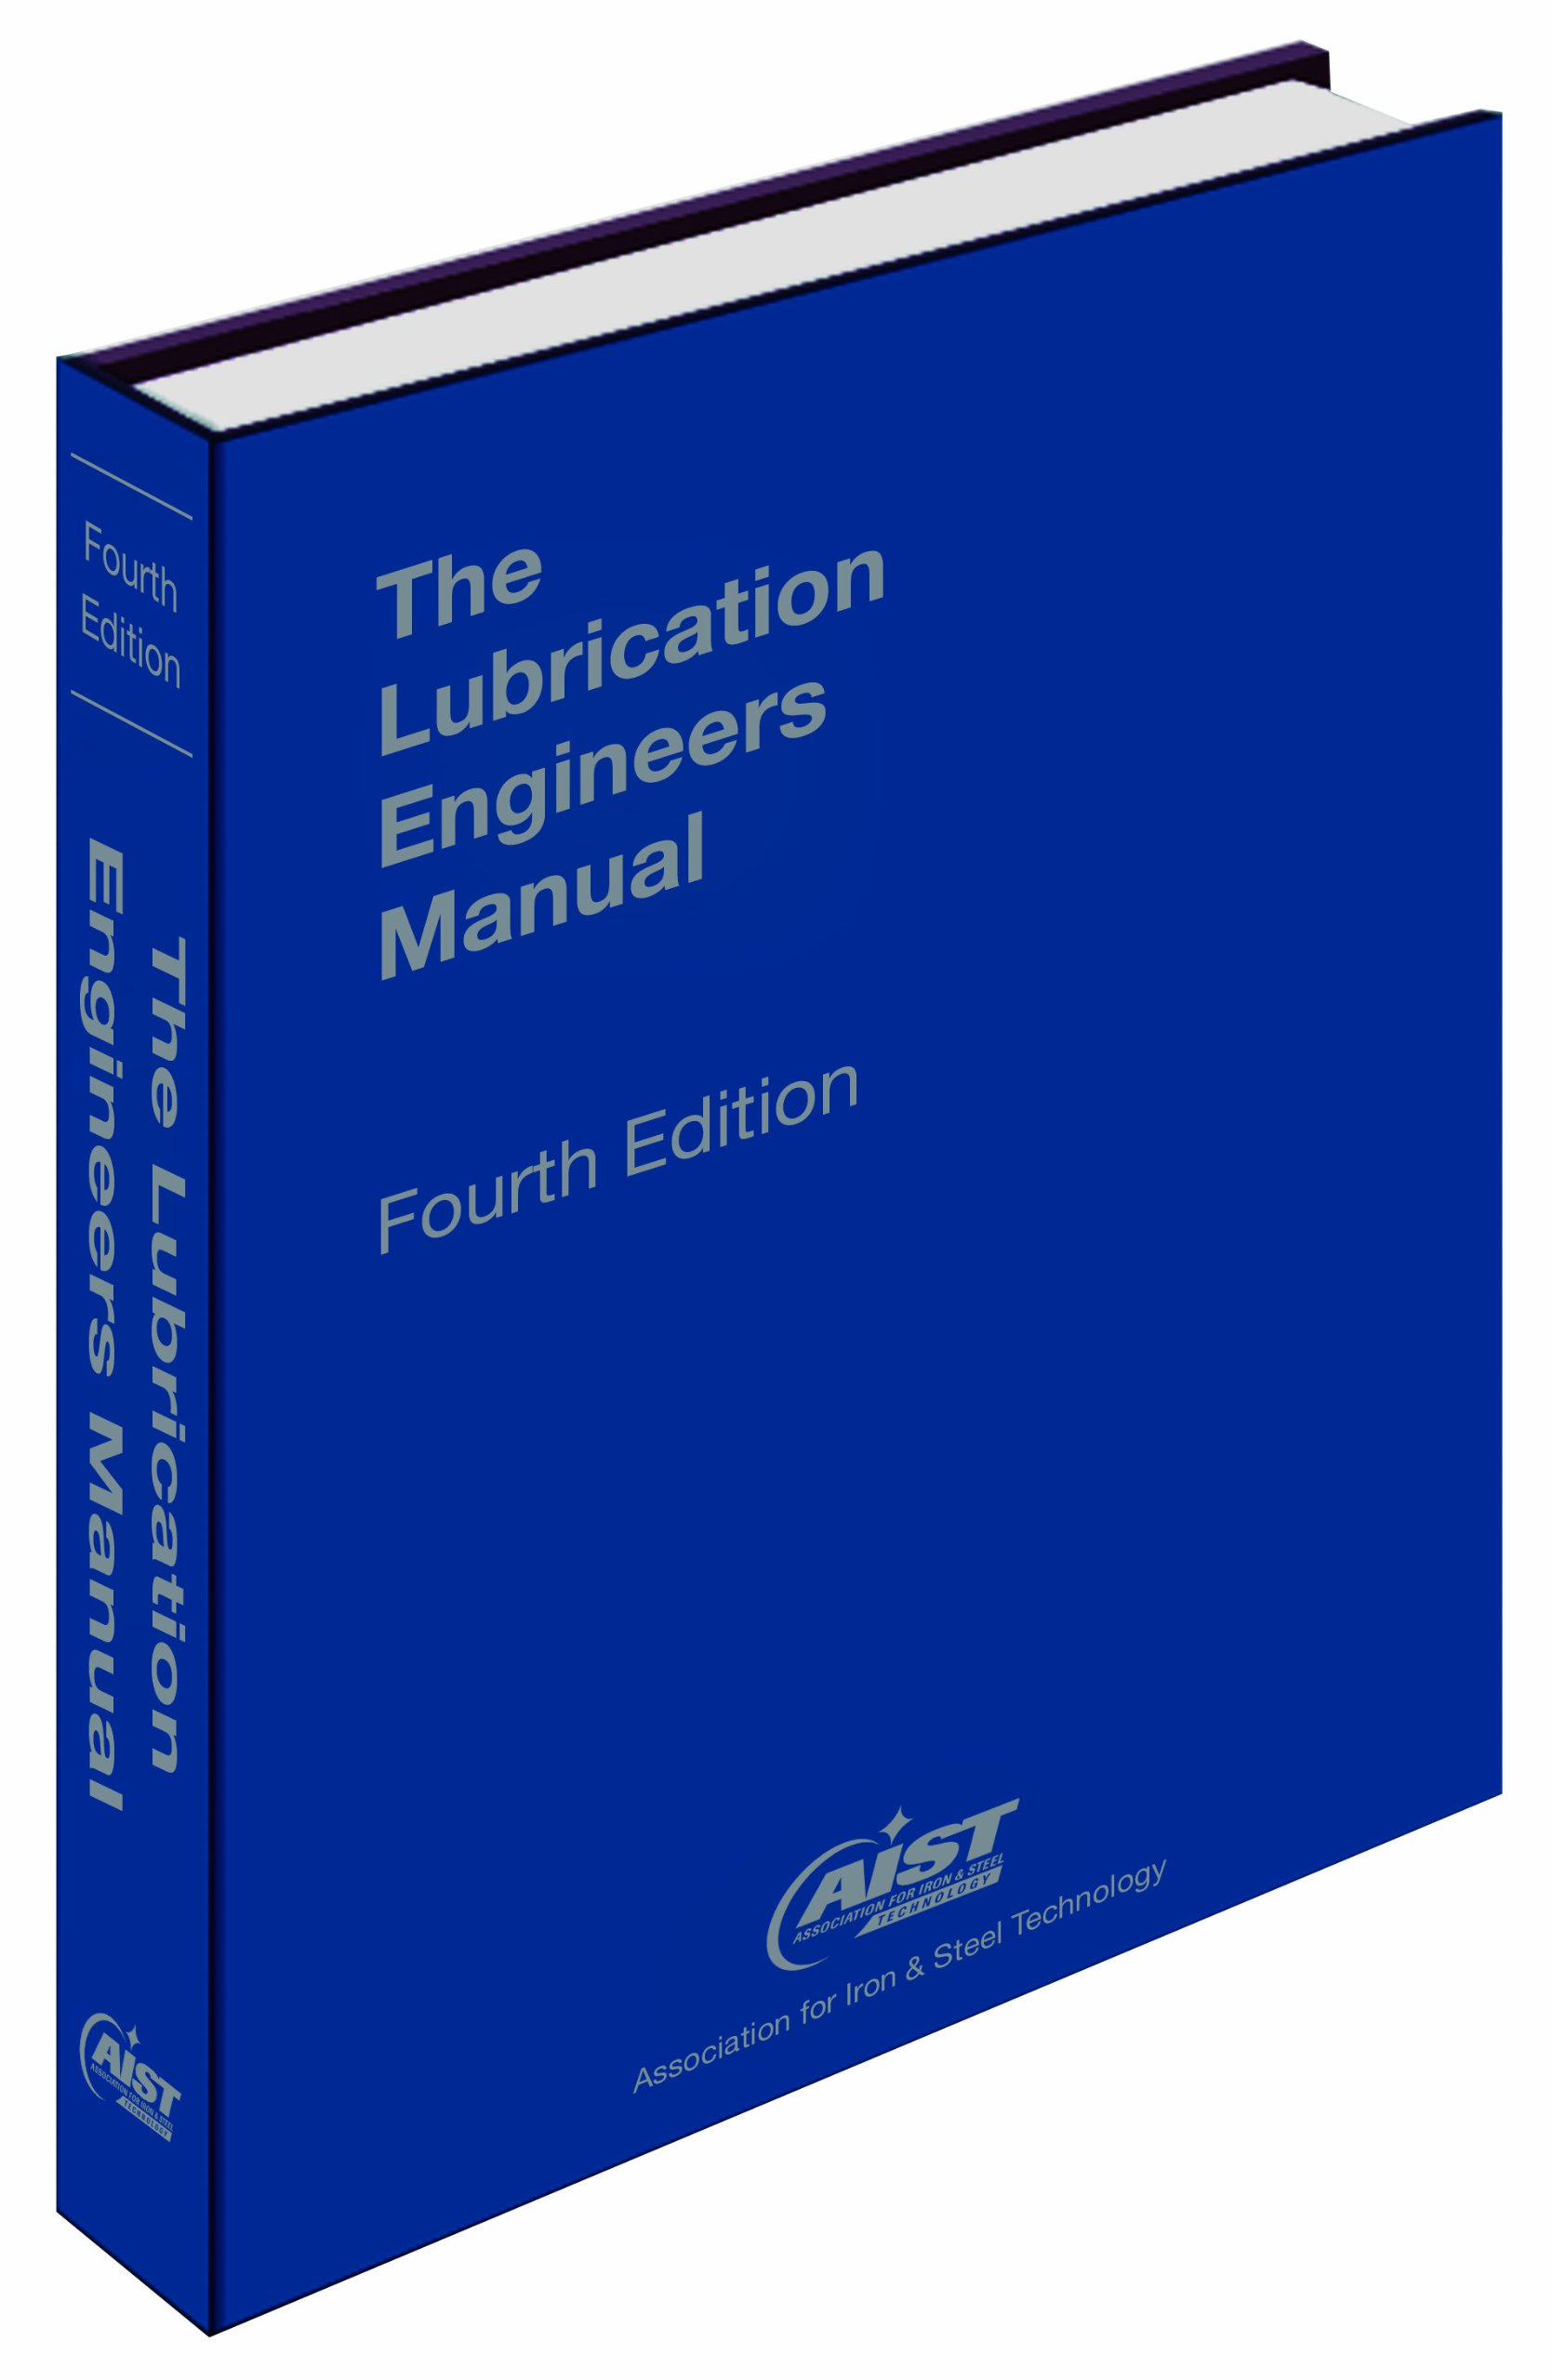 Lubrication engineers manual, 4th edition: association for iron.